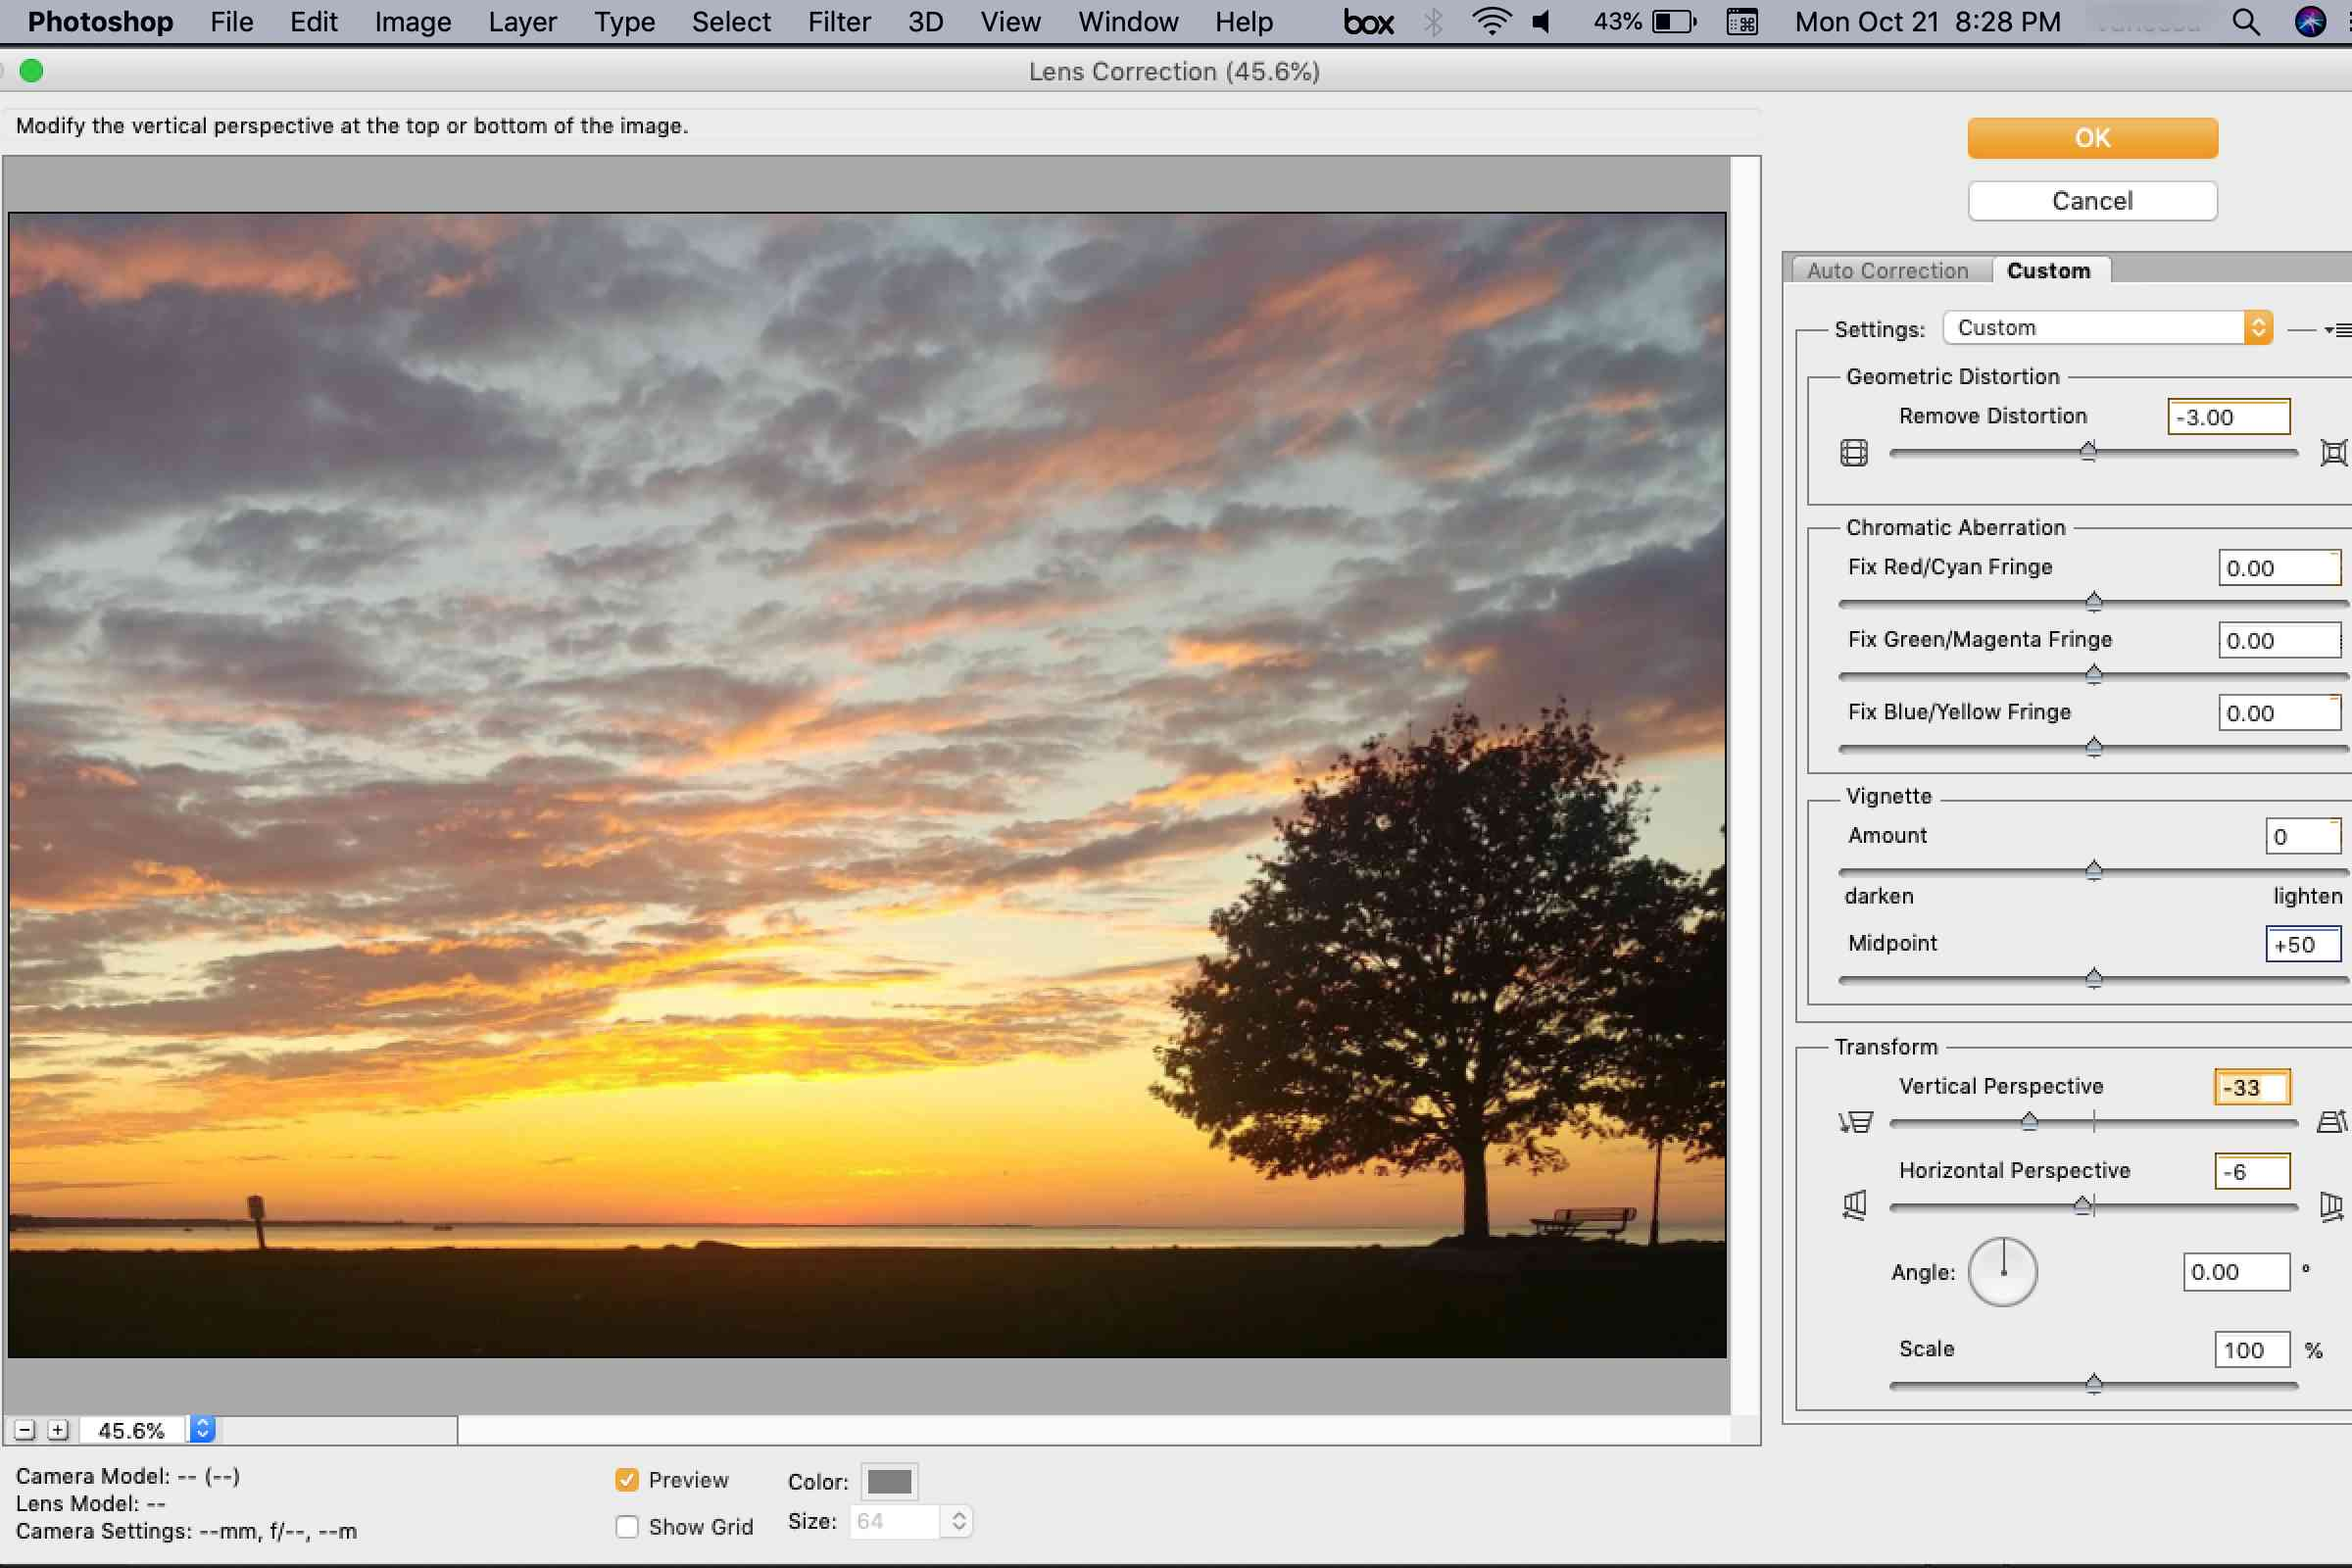 Correcting vertical perspective in Photoshop